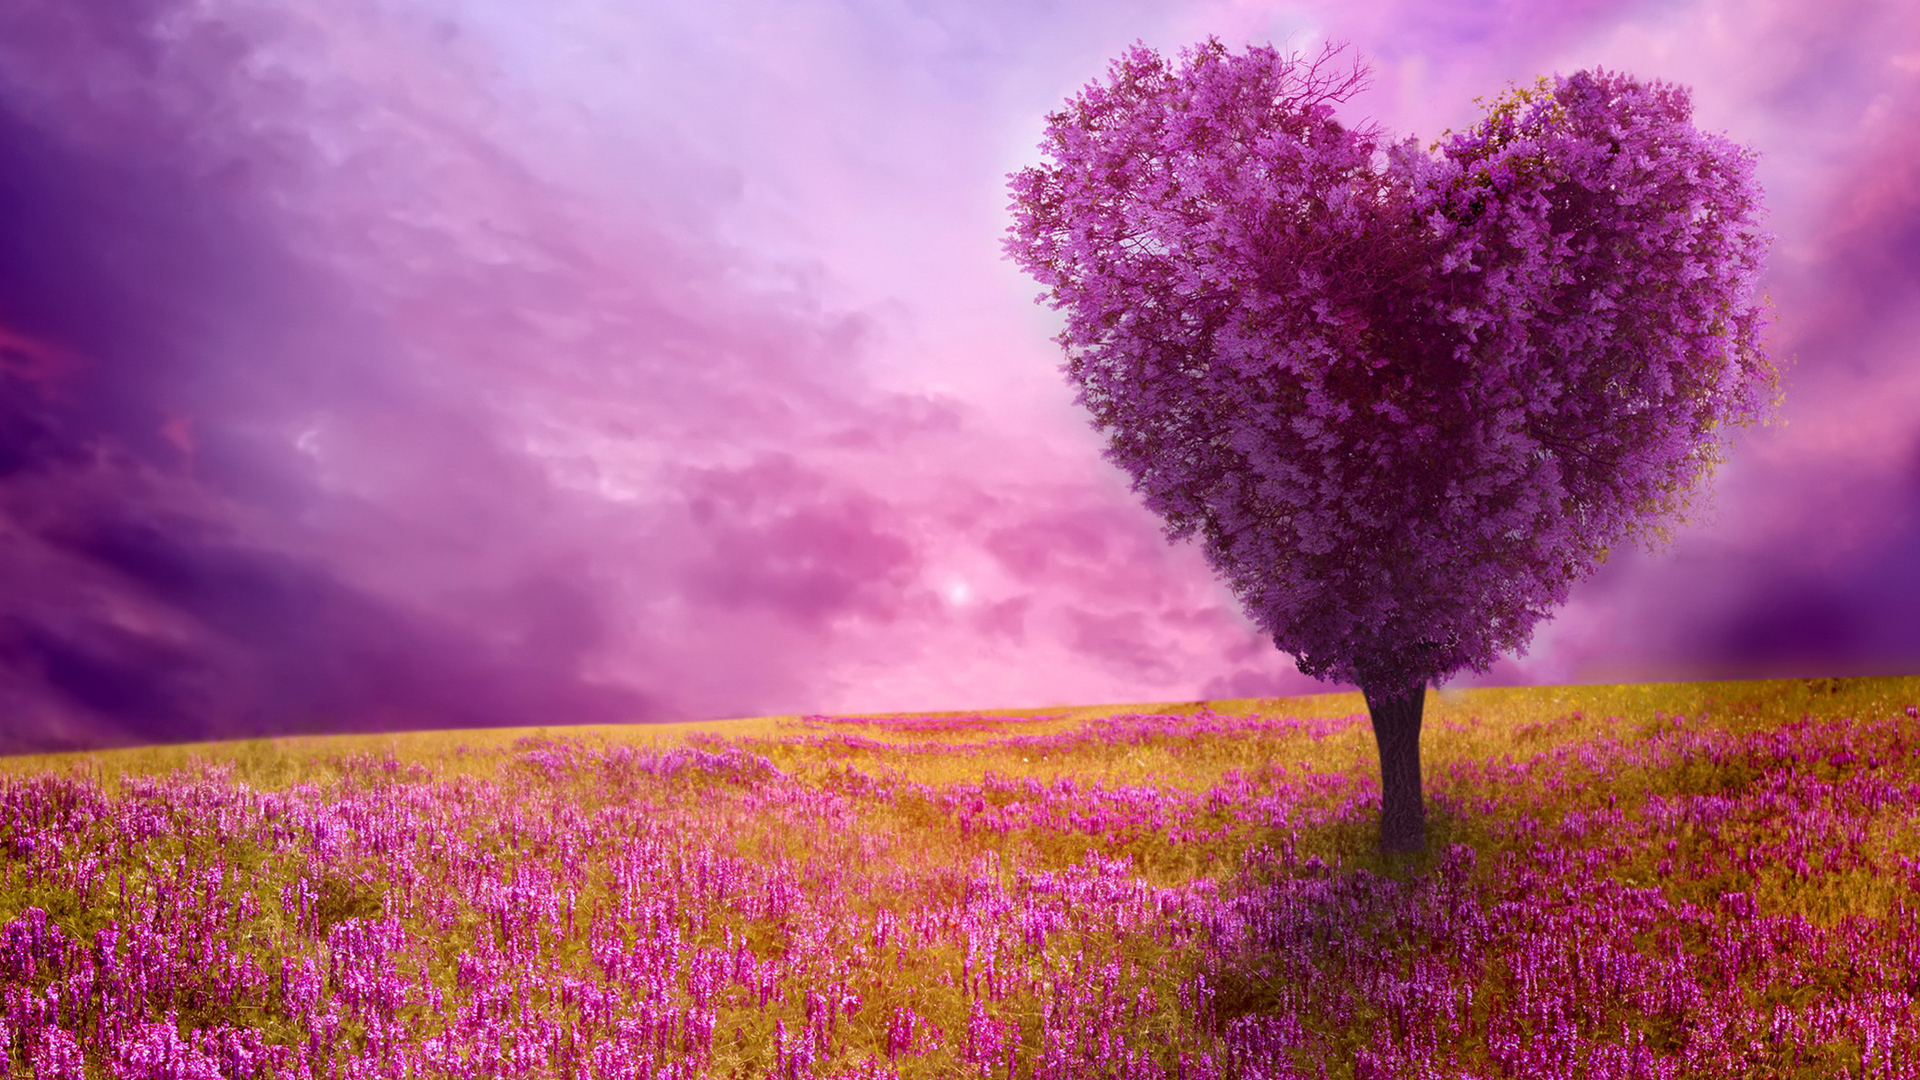 Spring pictures for wallpaper wallpapersafari - Wallpaper photos ...